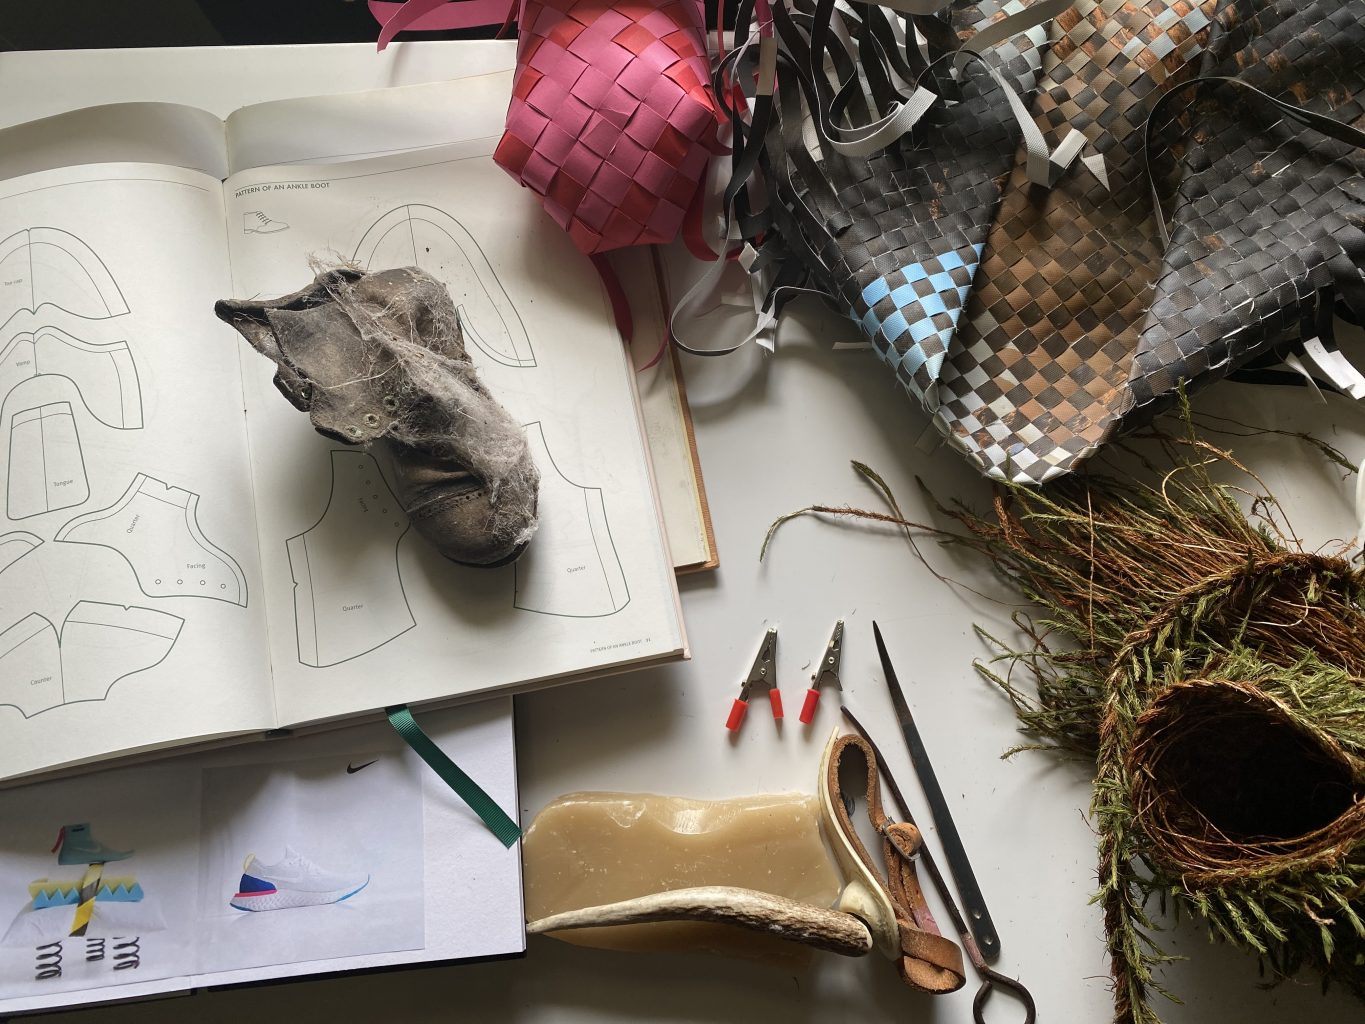 Images of trainers, open book with shoe pattern on the page, old children's shoe and samples of woven materials and baskets on a desk